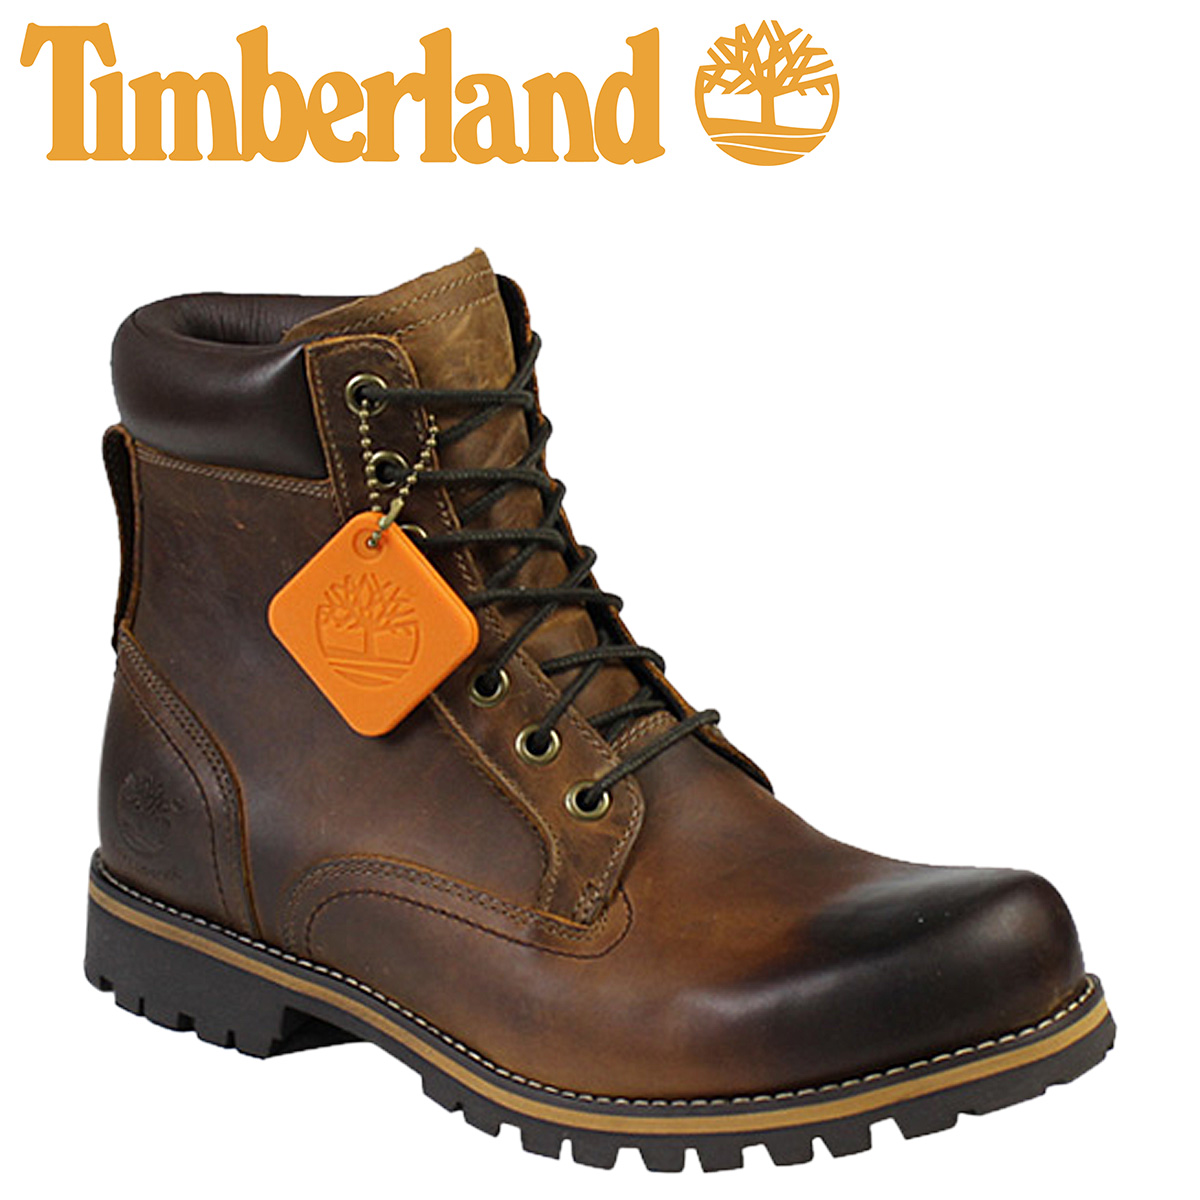 Global Market Sold Out Timberland Earthkeepers Rugged 6 Inch Boots Brown 74134 6inch Waterproof Boot Leather Men S